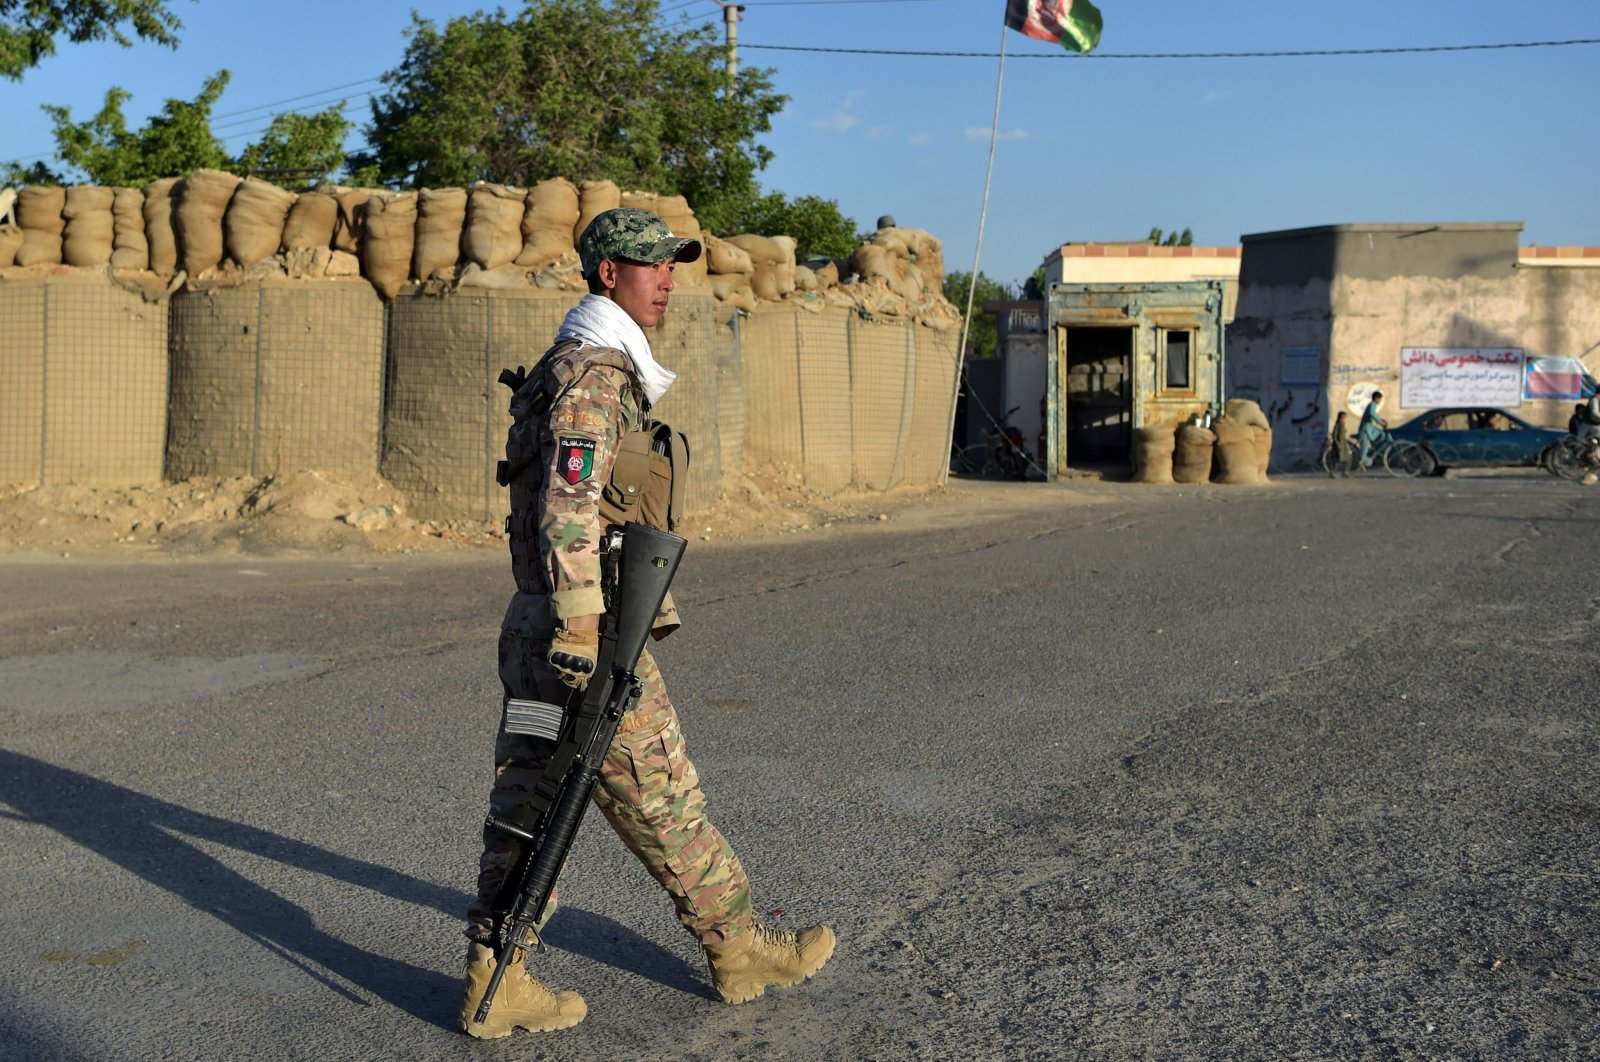 A policeman walks outside his outpost along a roadside in Ghazni, Afghanistan, June 3, 2021. (AFP Photo)